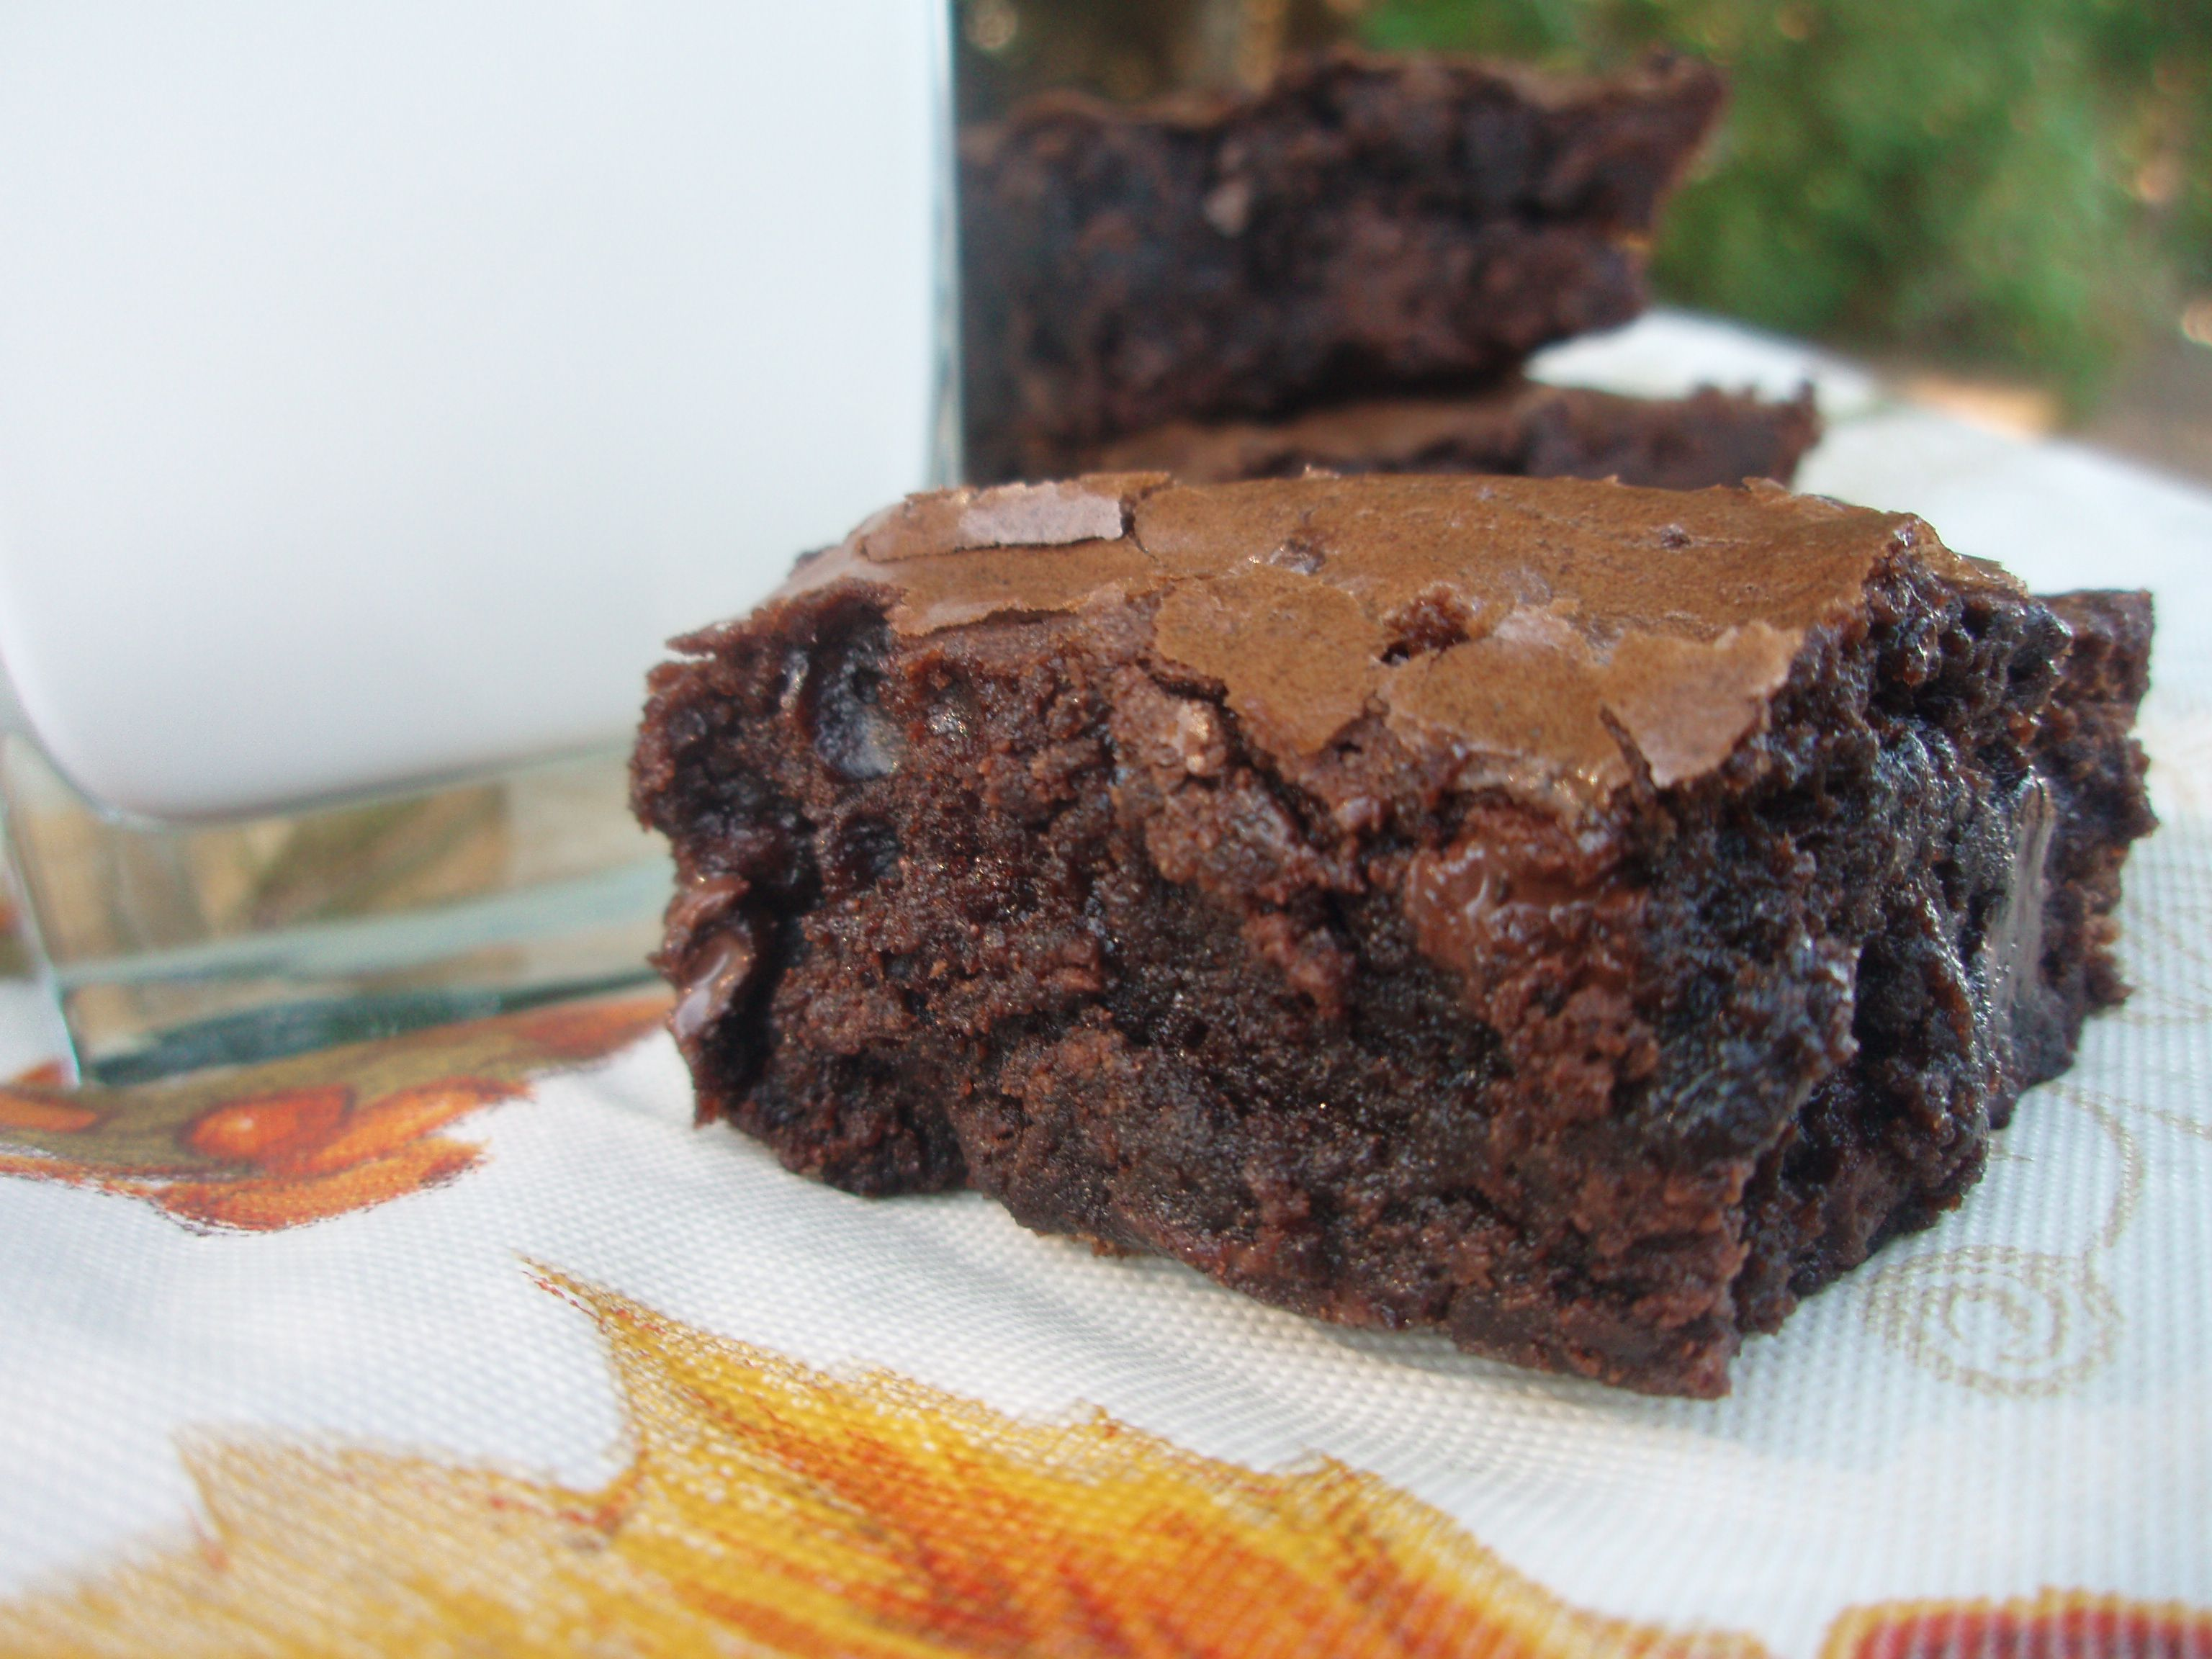 Low Fat Chocolate Cake Recipes From Scratch: Ultimate Double Chocolate Brownies